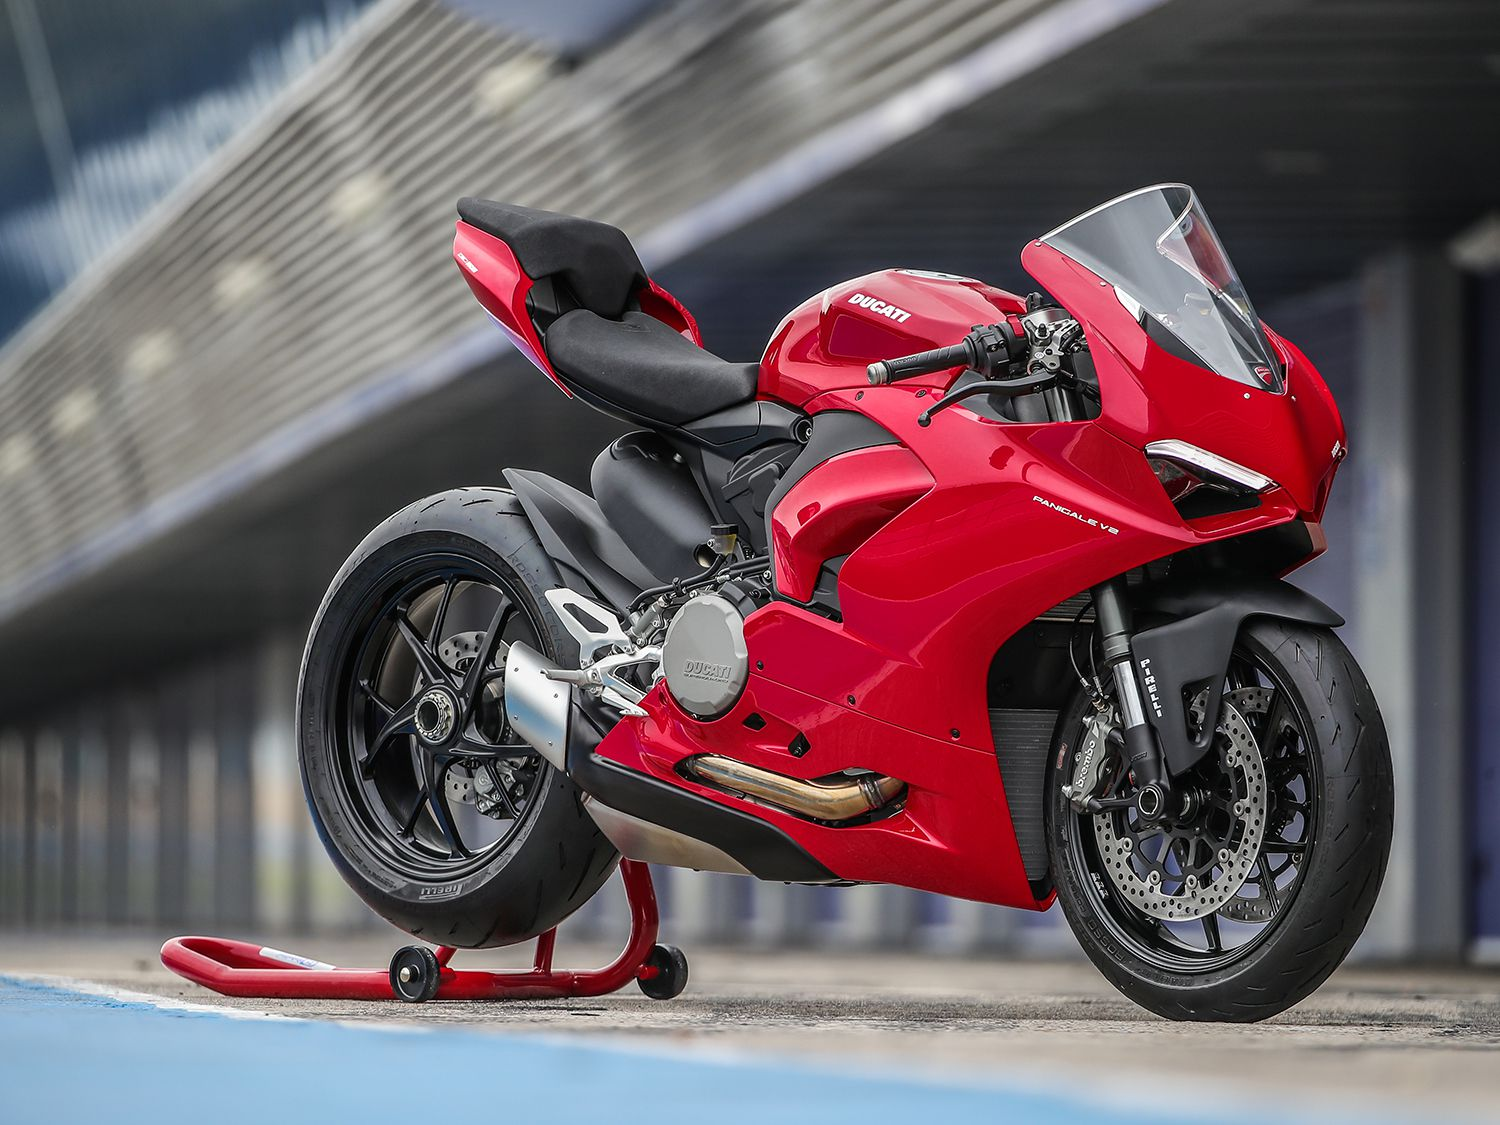 The V2 is a lower cost of entry to the Ducati Panigale family, pricing in at $16,495 in the United States.